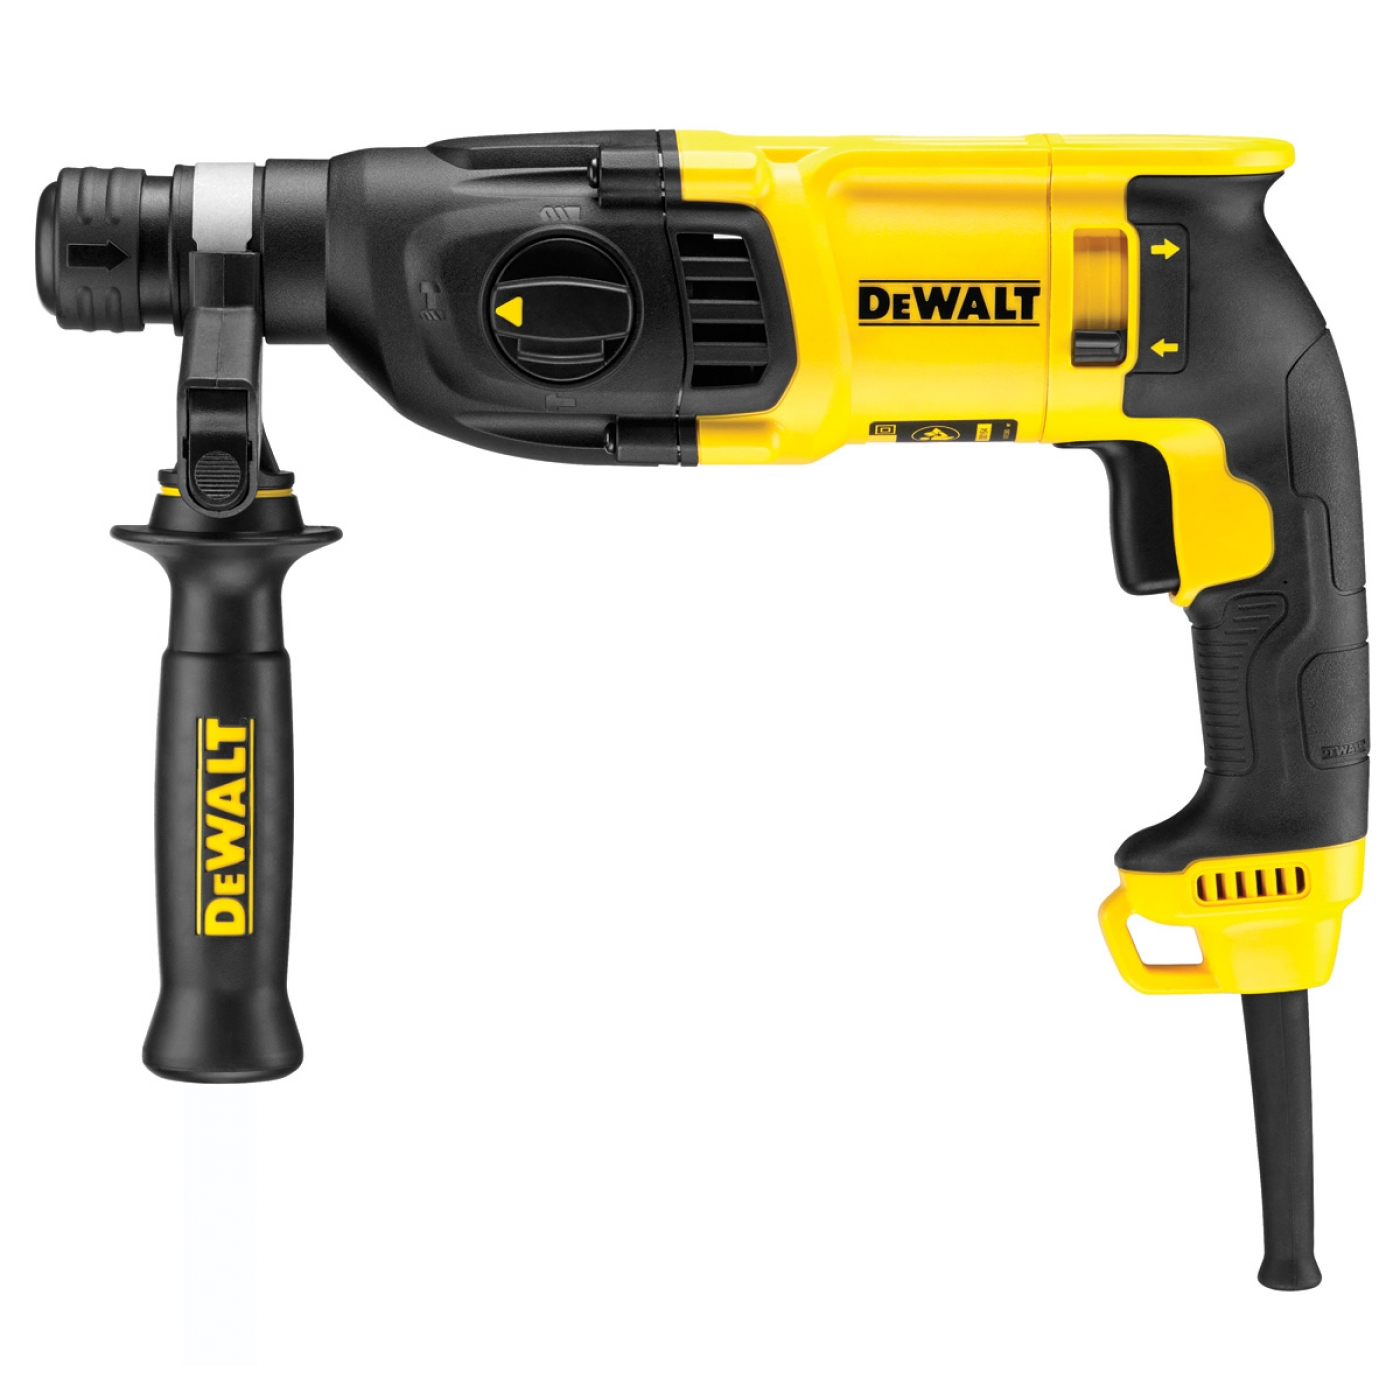 DEWALT D25133K-B5 HEAVY DUTY SDS PLUS COMB. HAMMER; 26MM; 220V